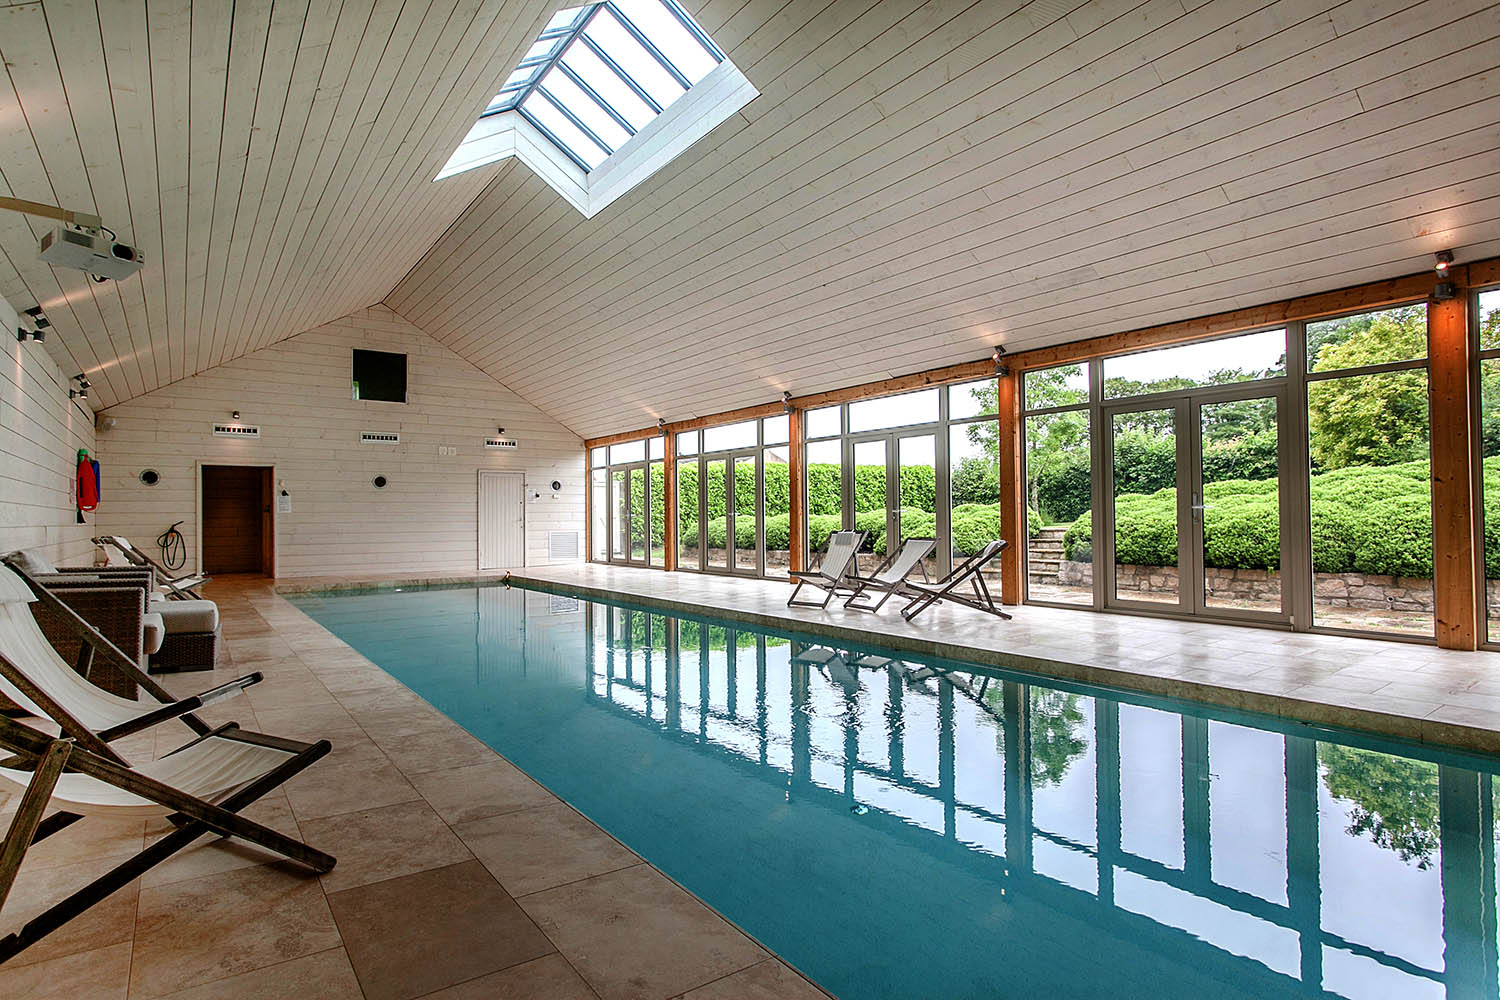 The swimming pool at Lilycombe Farm